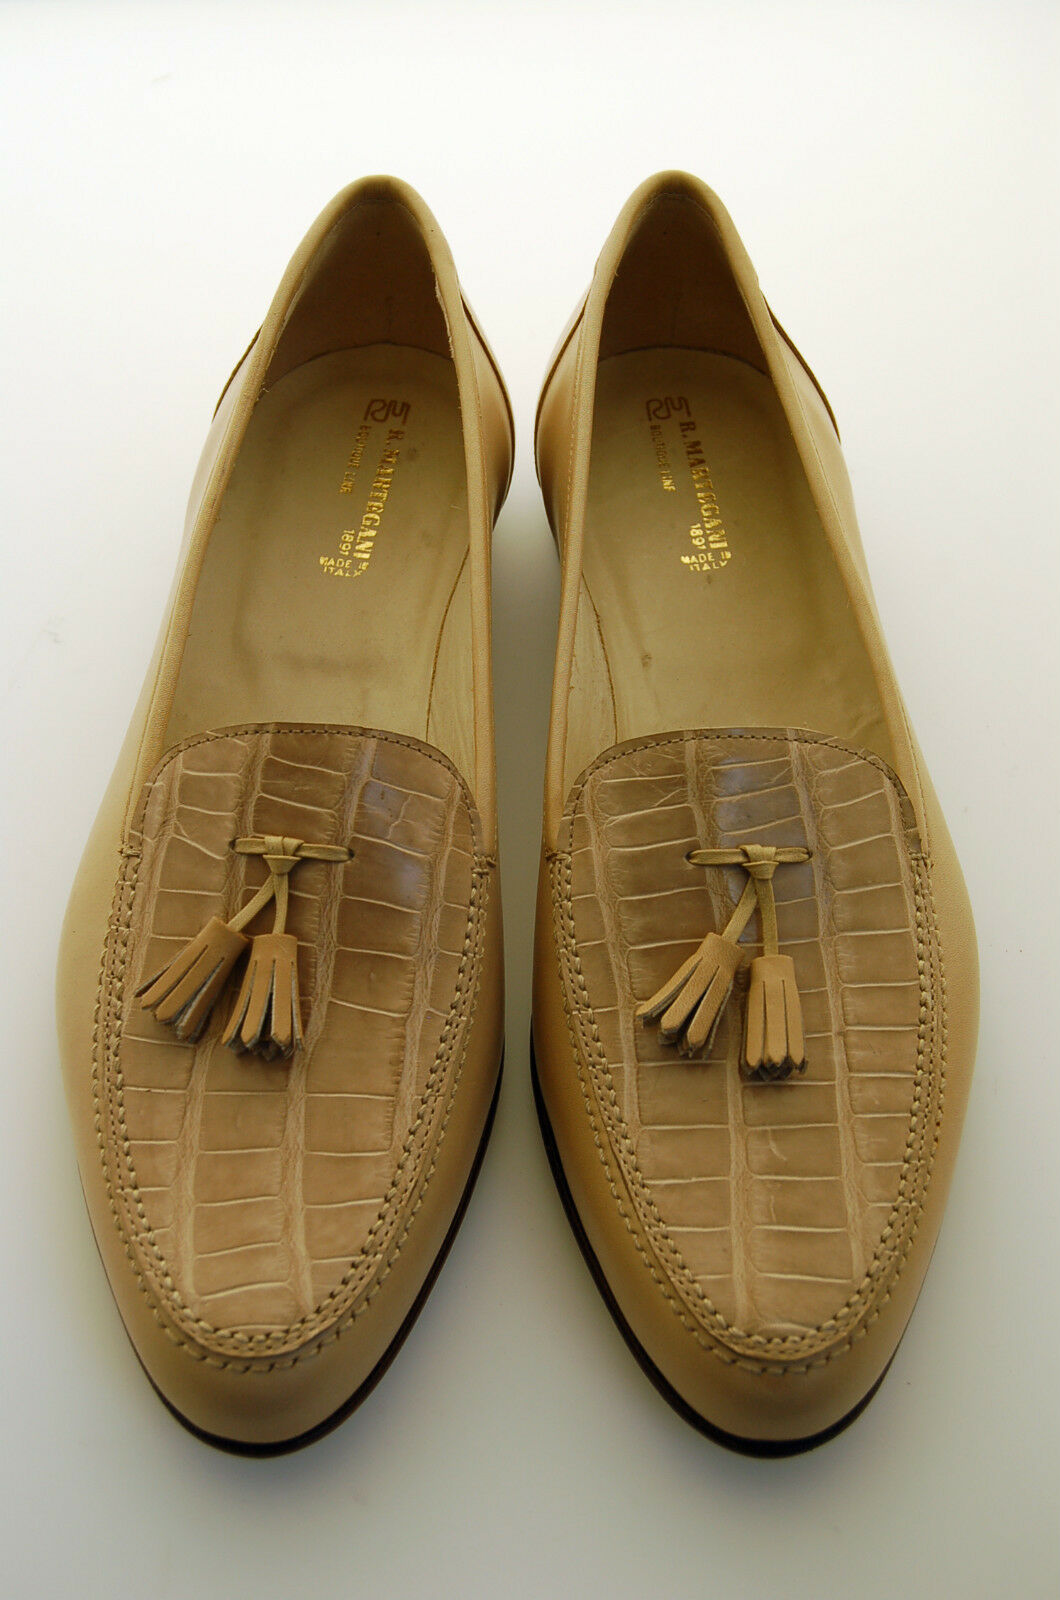 MAN MAN MAN - 42½- 8½eu - PENNY LOAFER-GENUINE BEIGE ALLIGATOR & CALF-LTH SOLE-BLAKE CST 0aed75